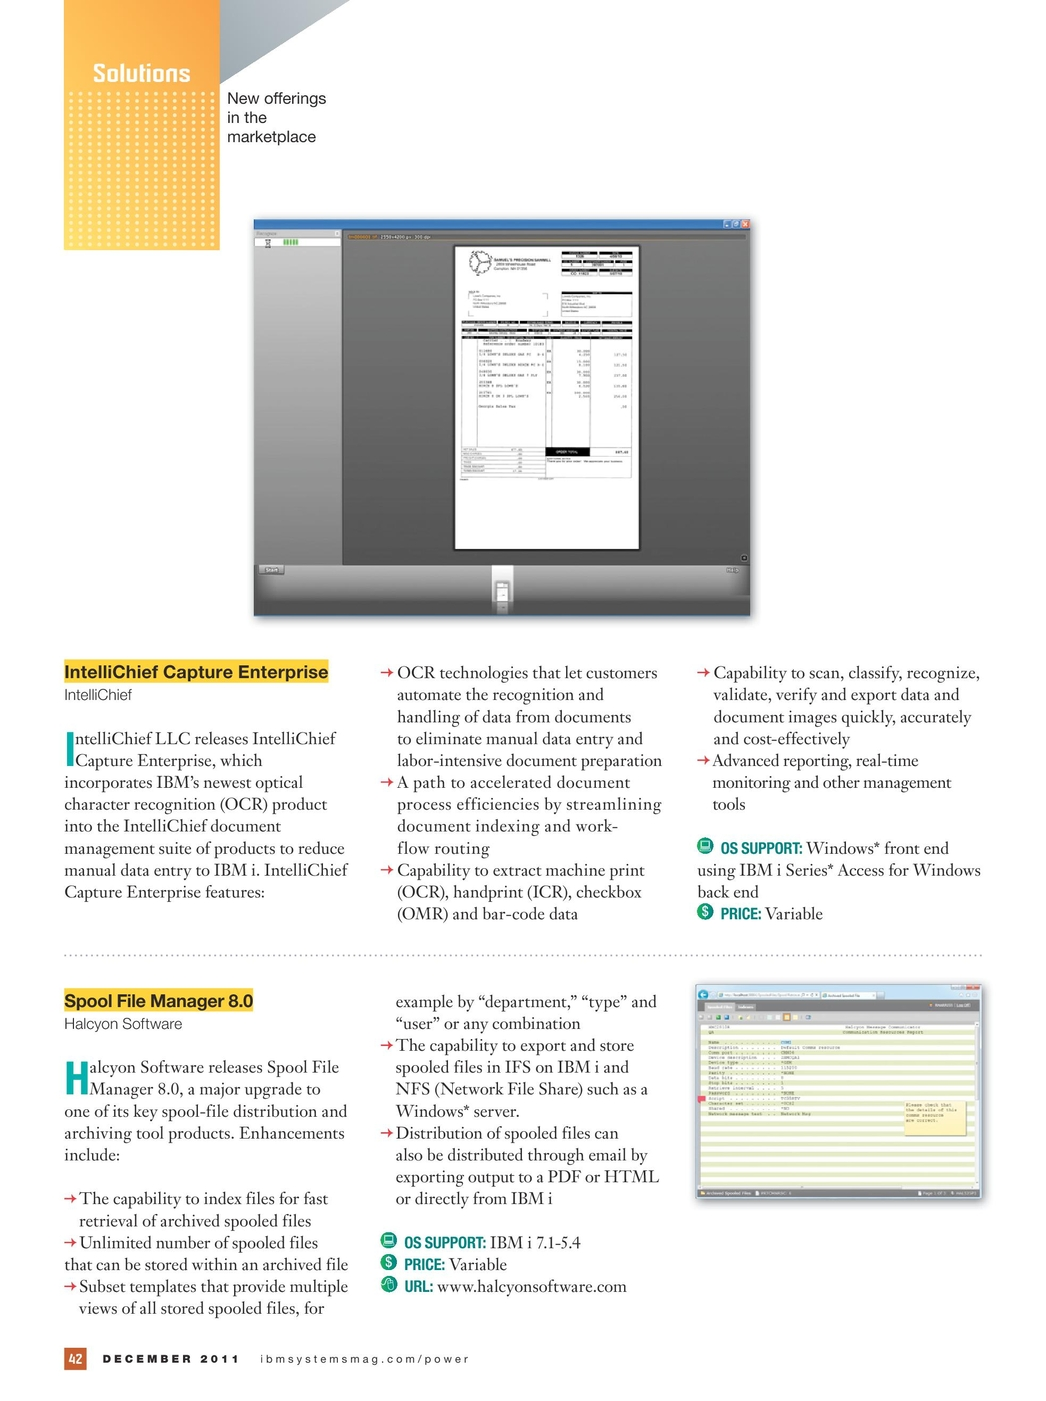 IBM Systems Magazine, Power Systems Edition - December 2011